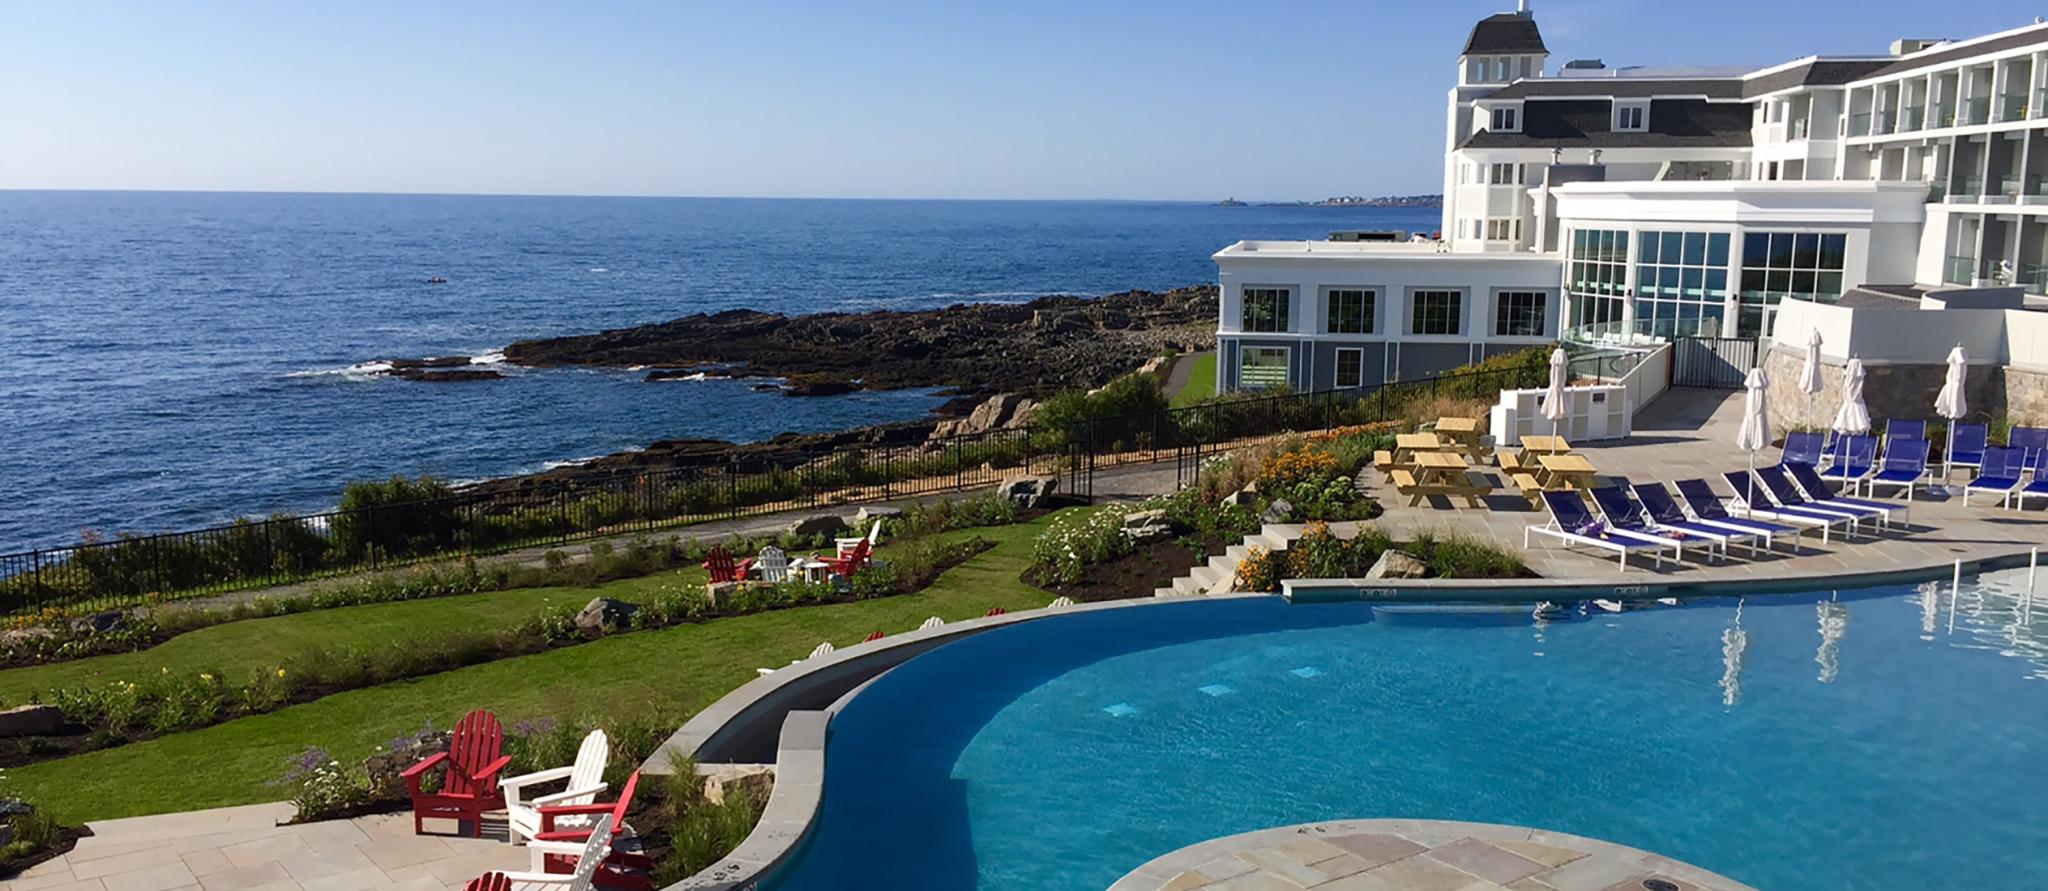 Unique Lodging + Vacations in Maine | New England Inns and